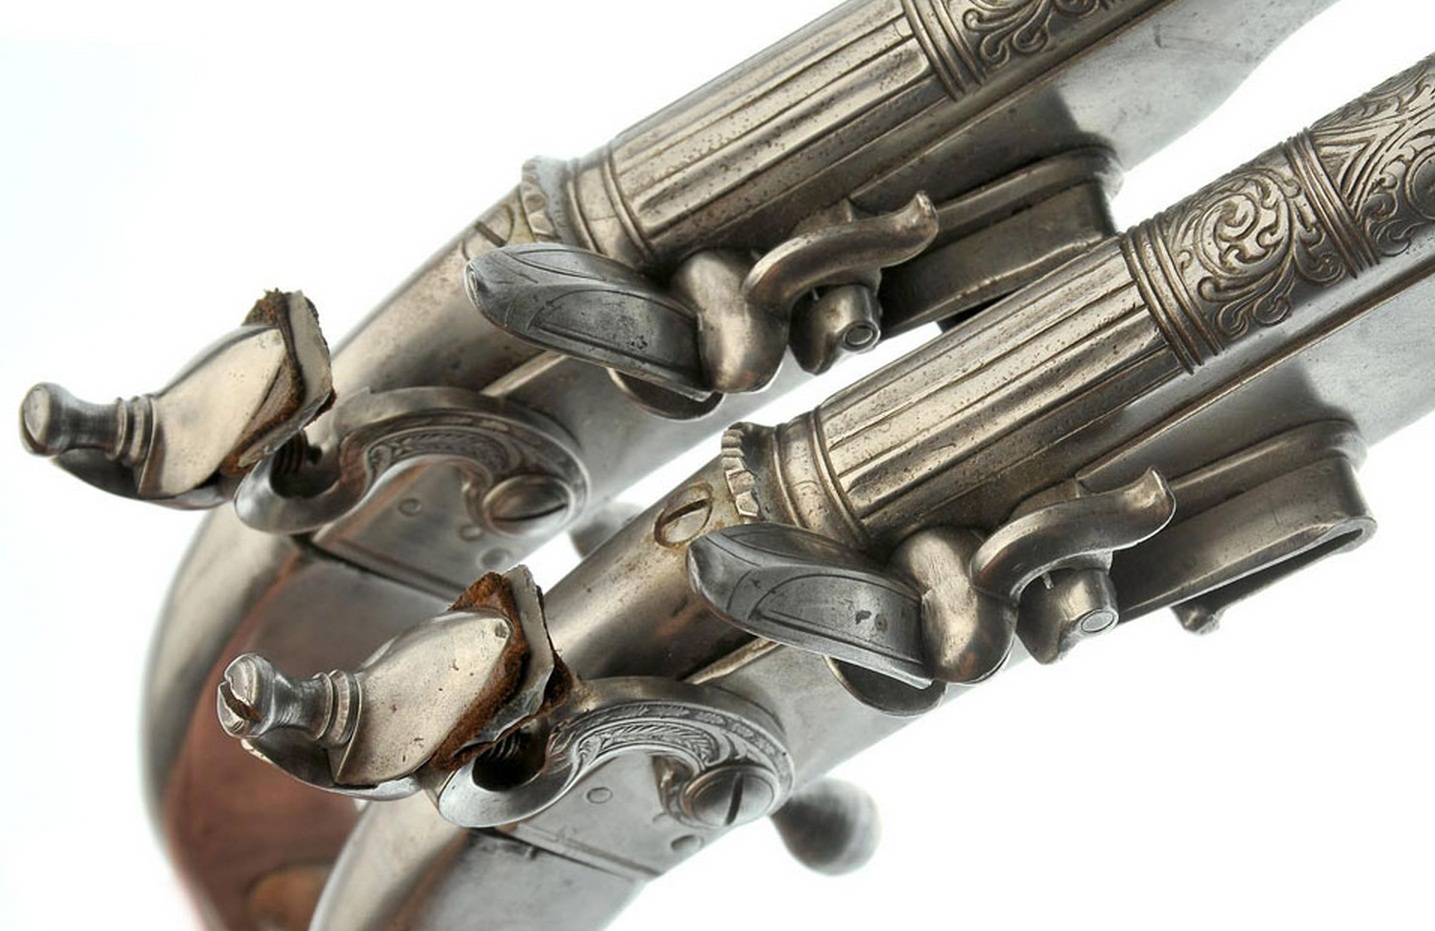 Scottish flintlock pistol